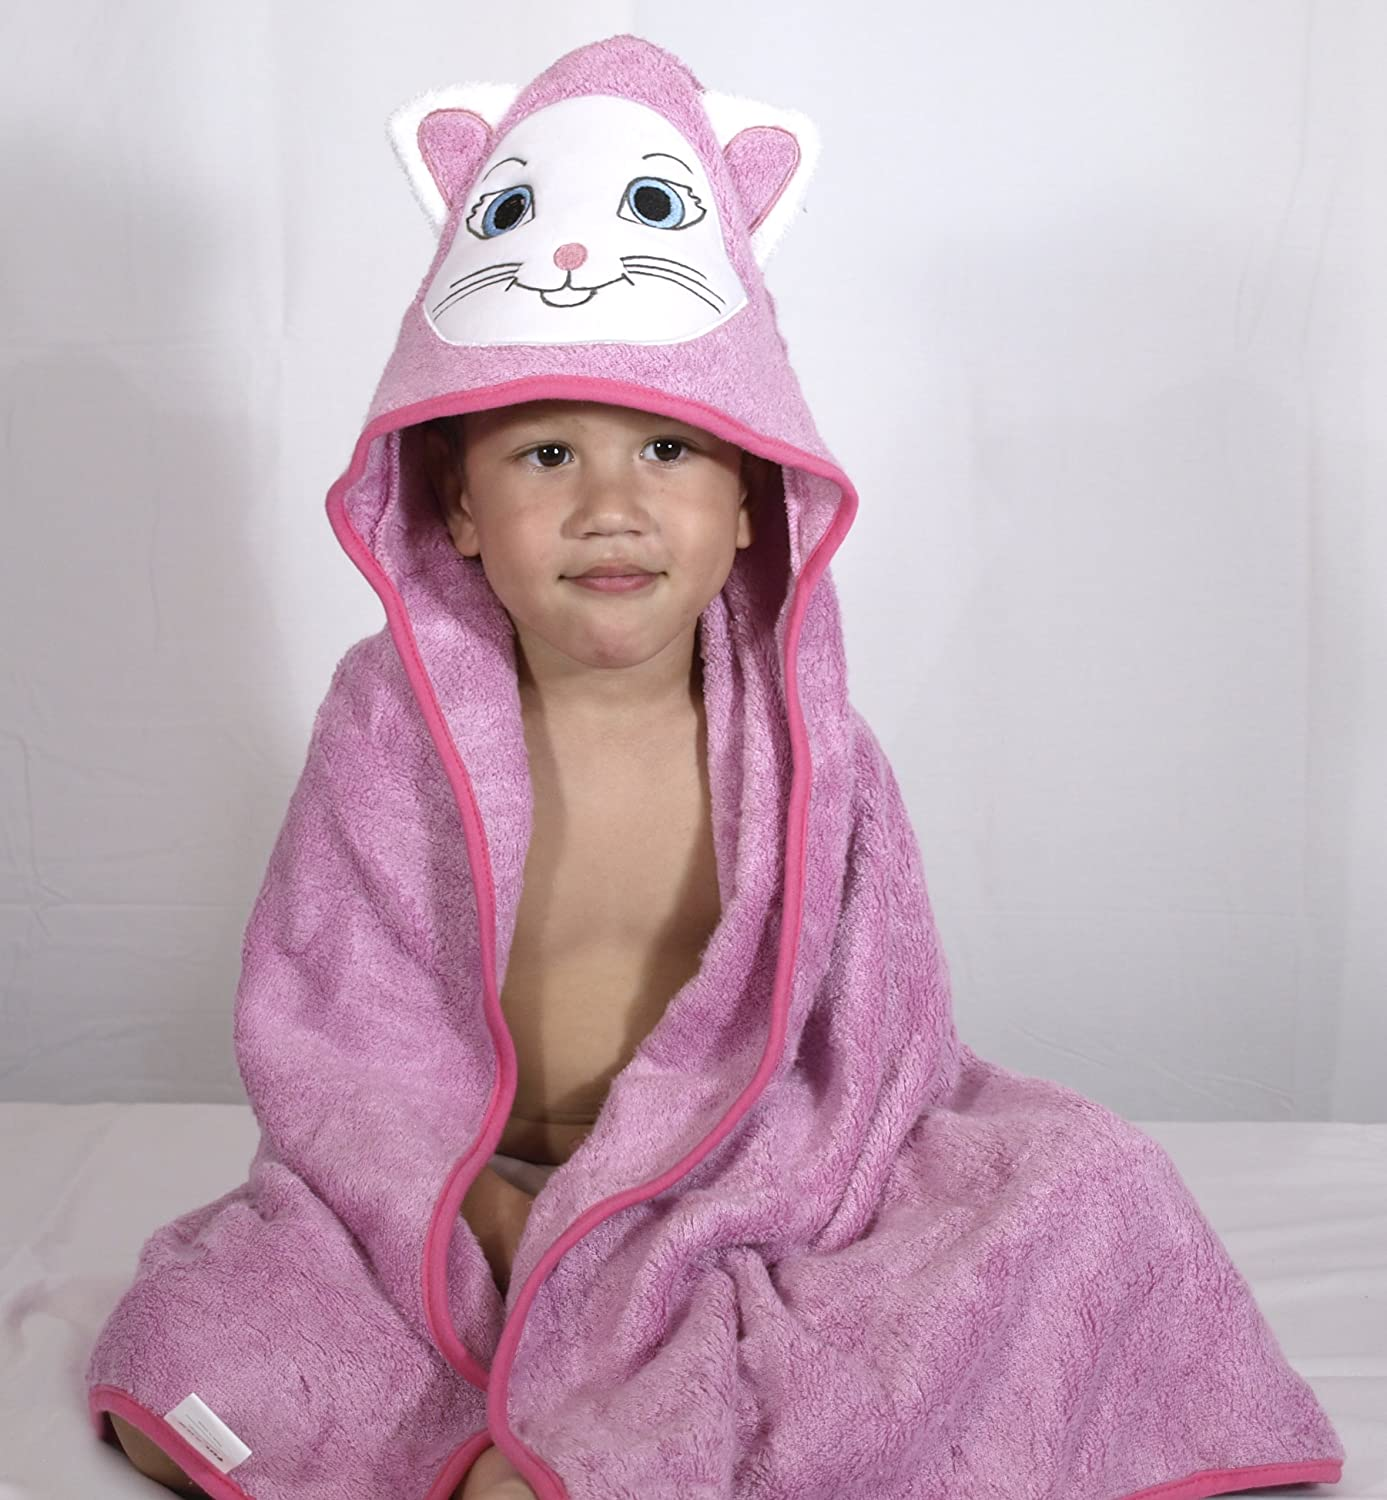 Premium Toddler to Kids Hooded Beach and Bath Towel | Organic Bamboo | Large 35.4 by 35.4 inch | Kitty...